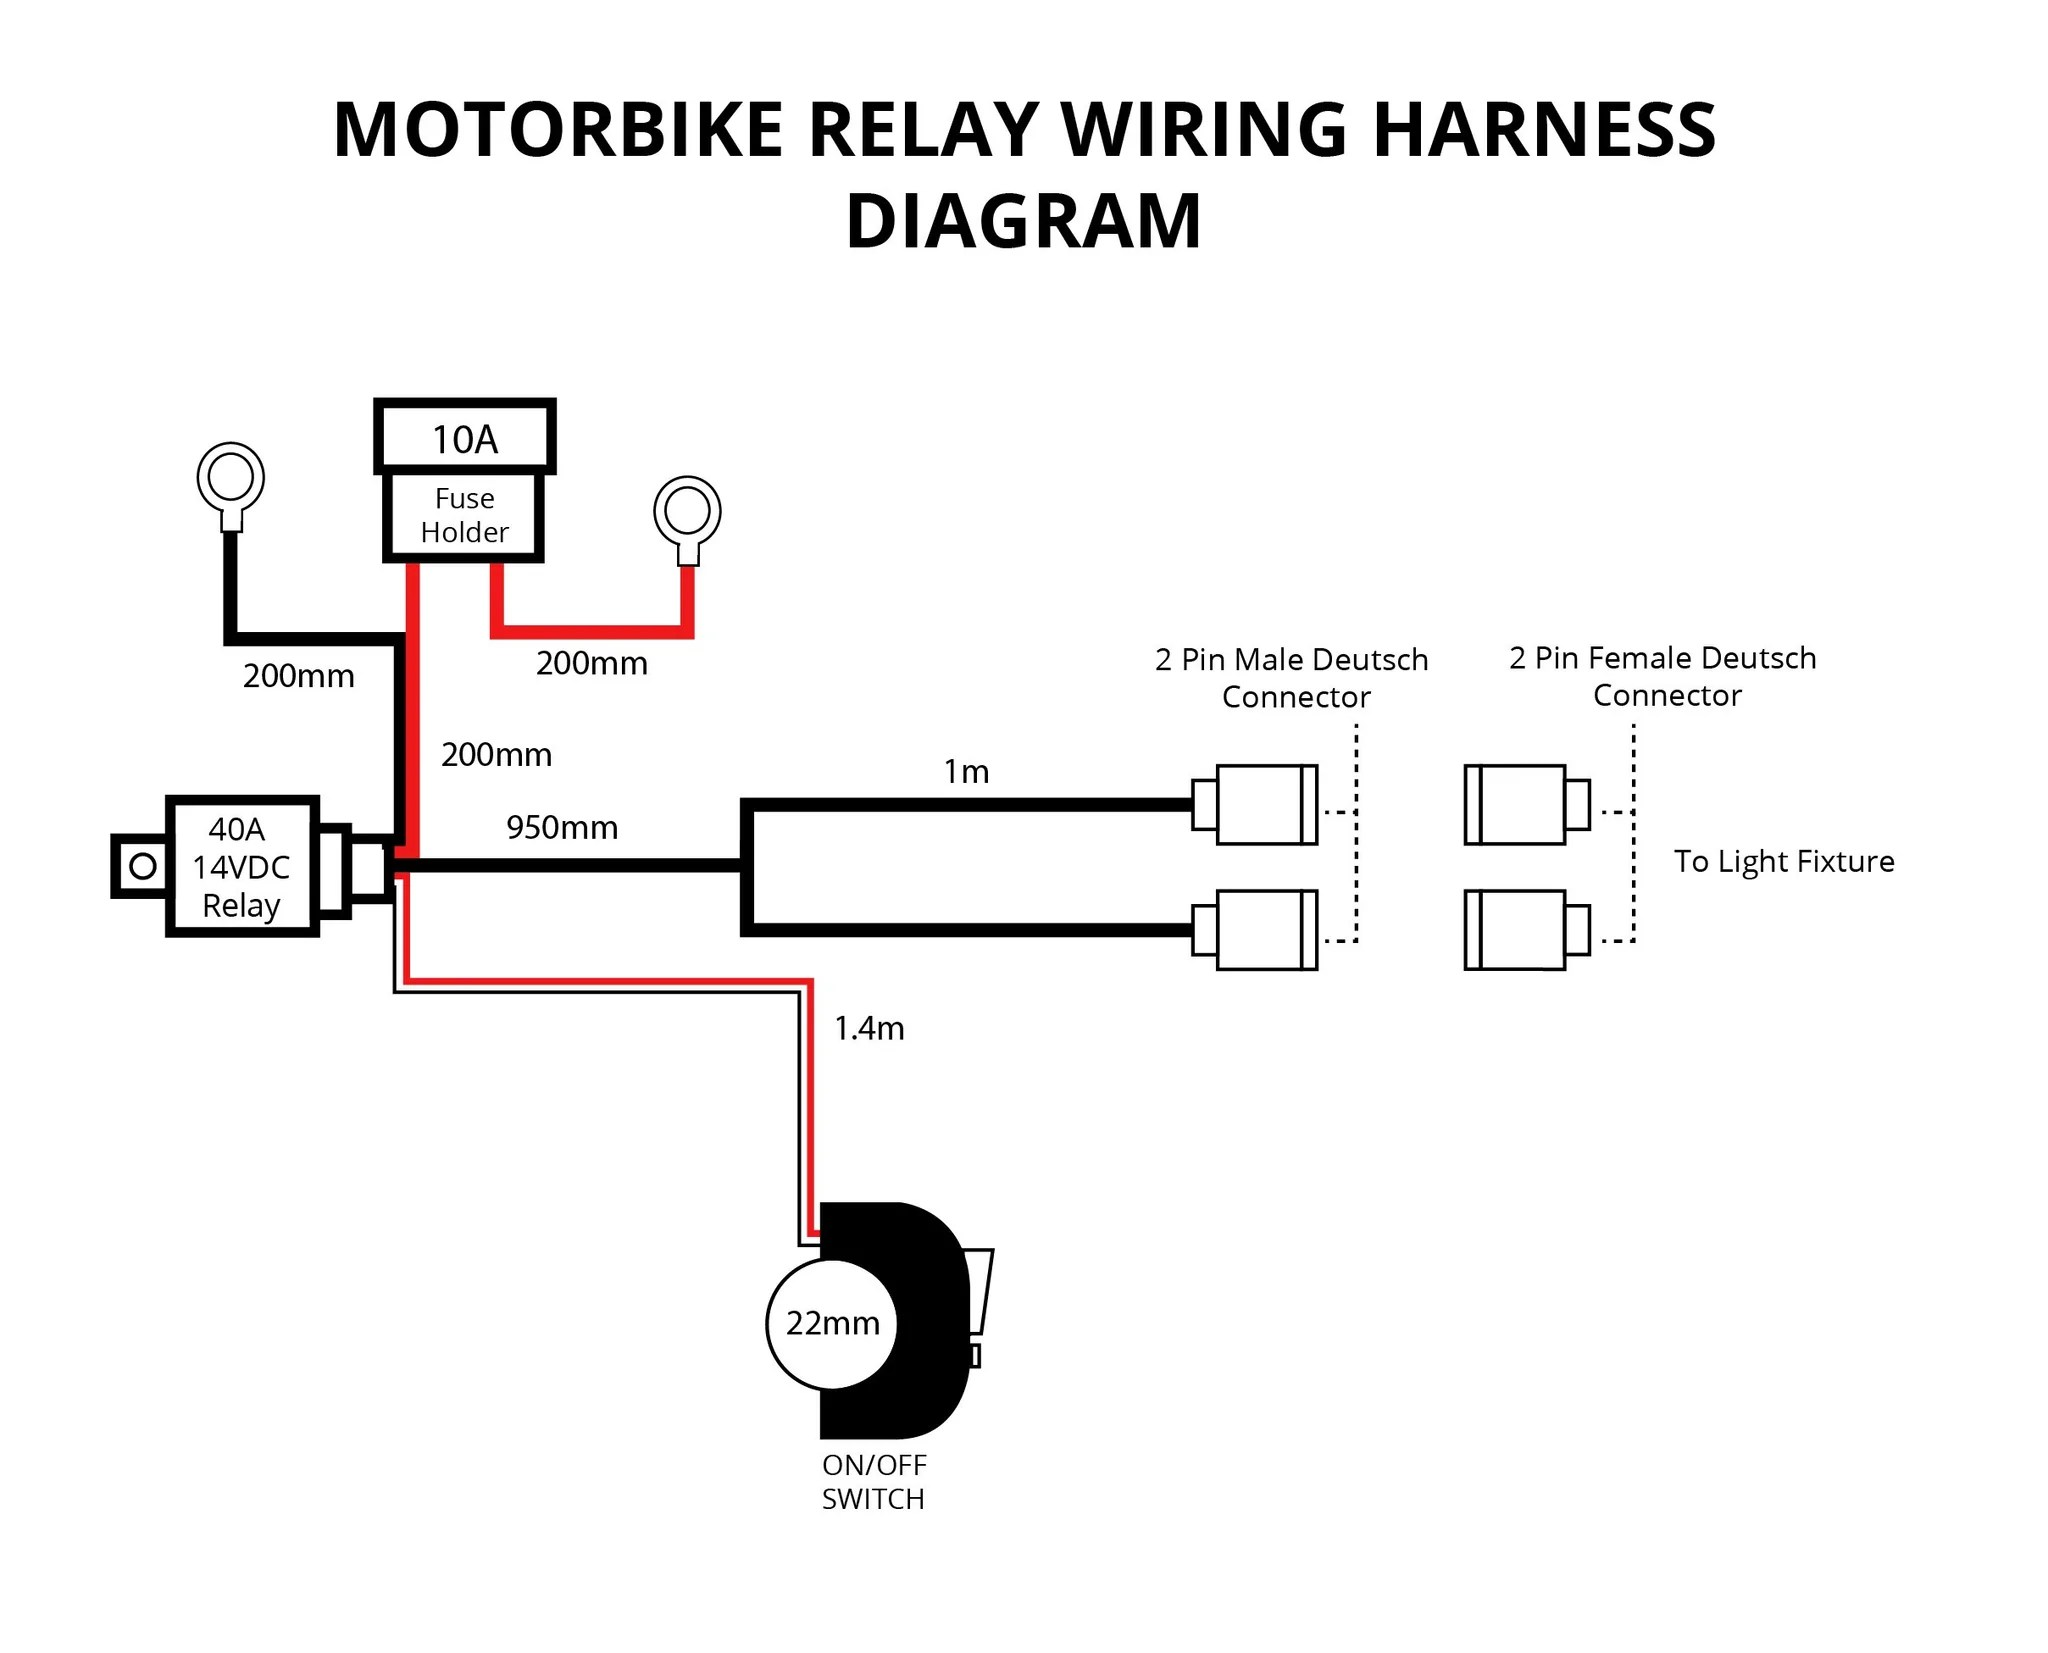 hight resolution of piaa relay wiring diagram for lights marlin glenfield 60 piaa relay switch piaa relay switch